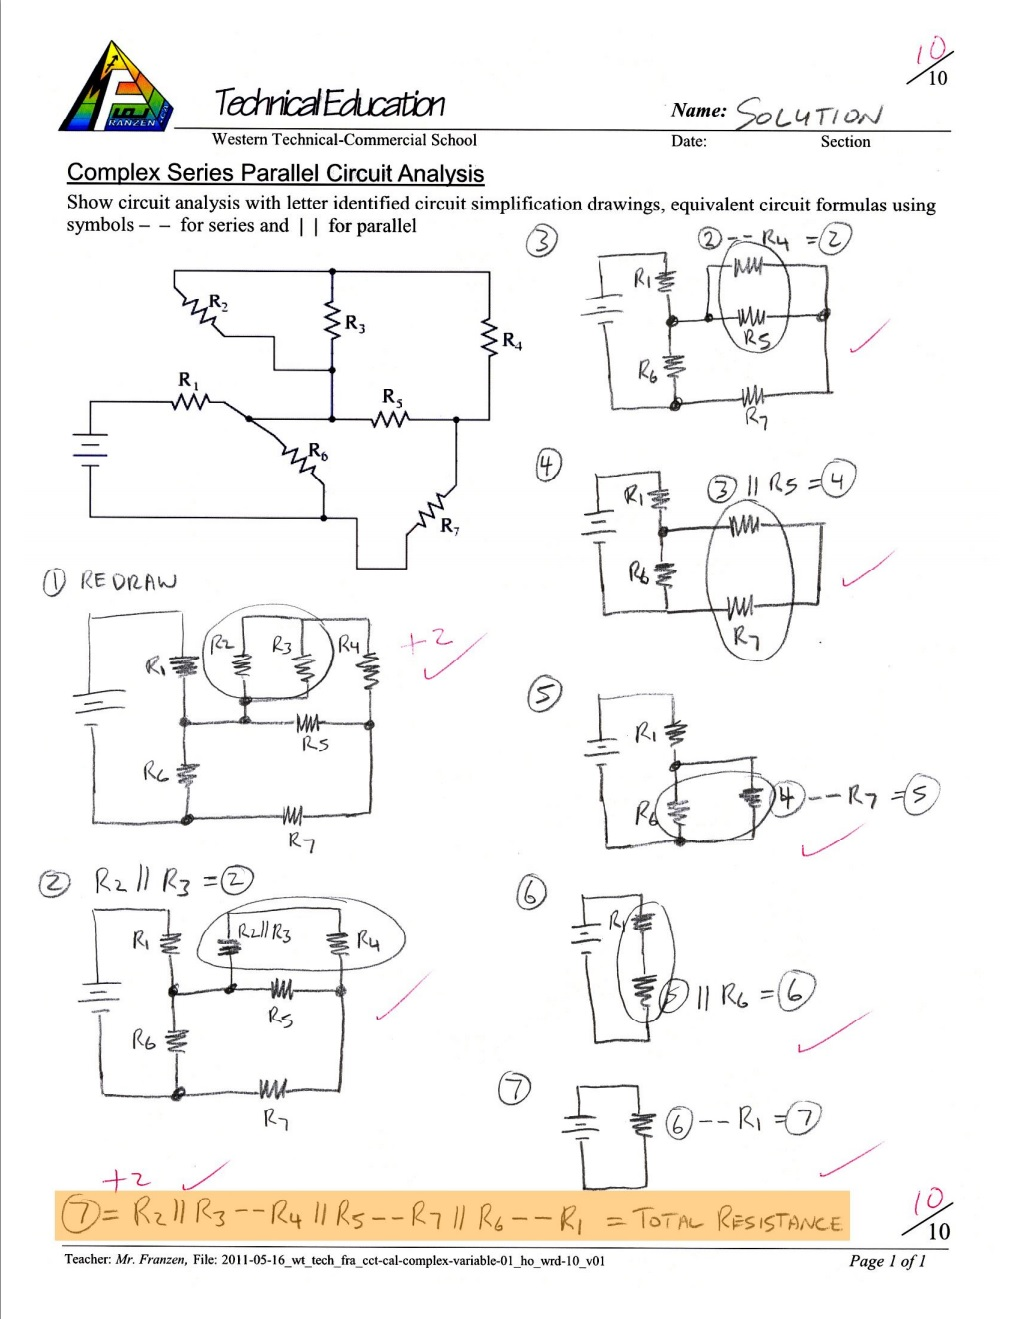 series and parallel circuits worksheet Termolak – Parallel Circuits Worksheet